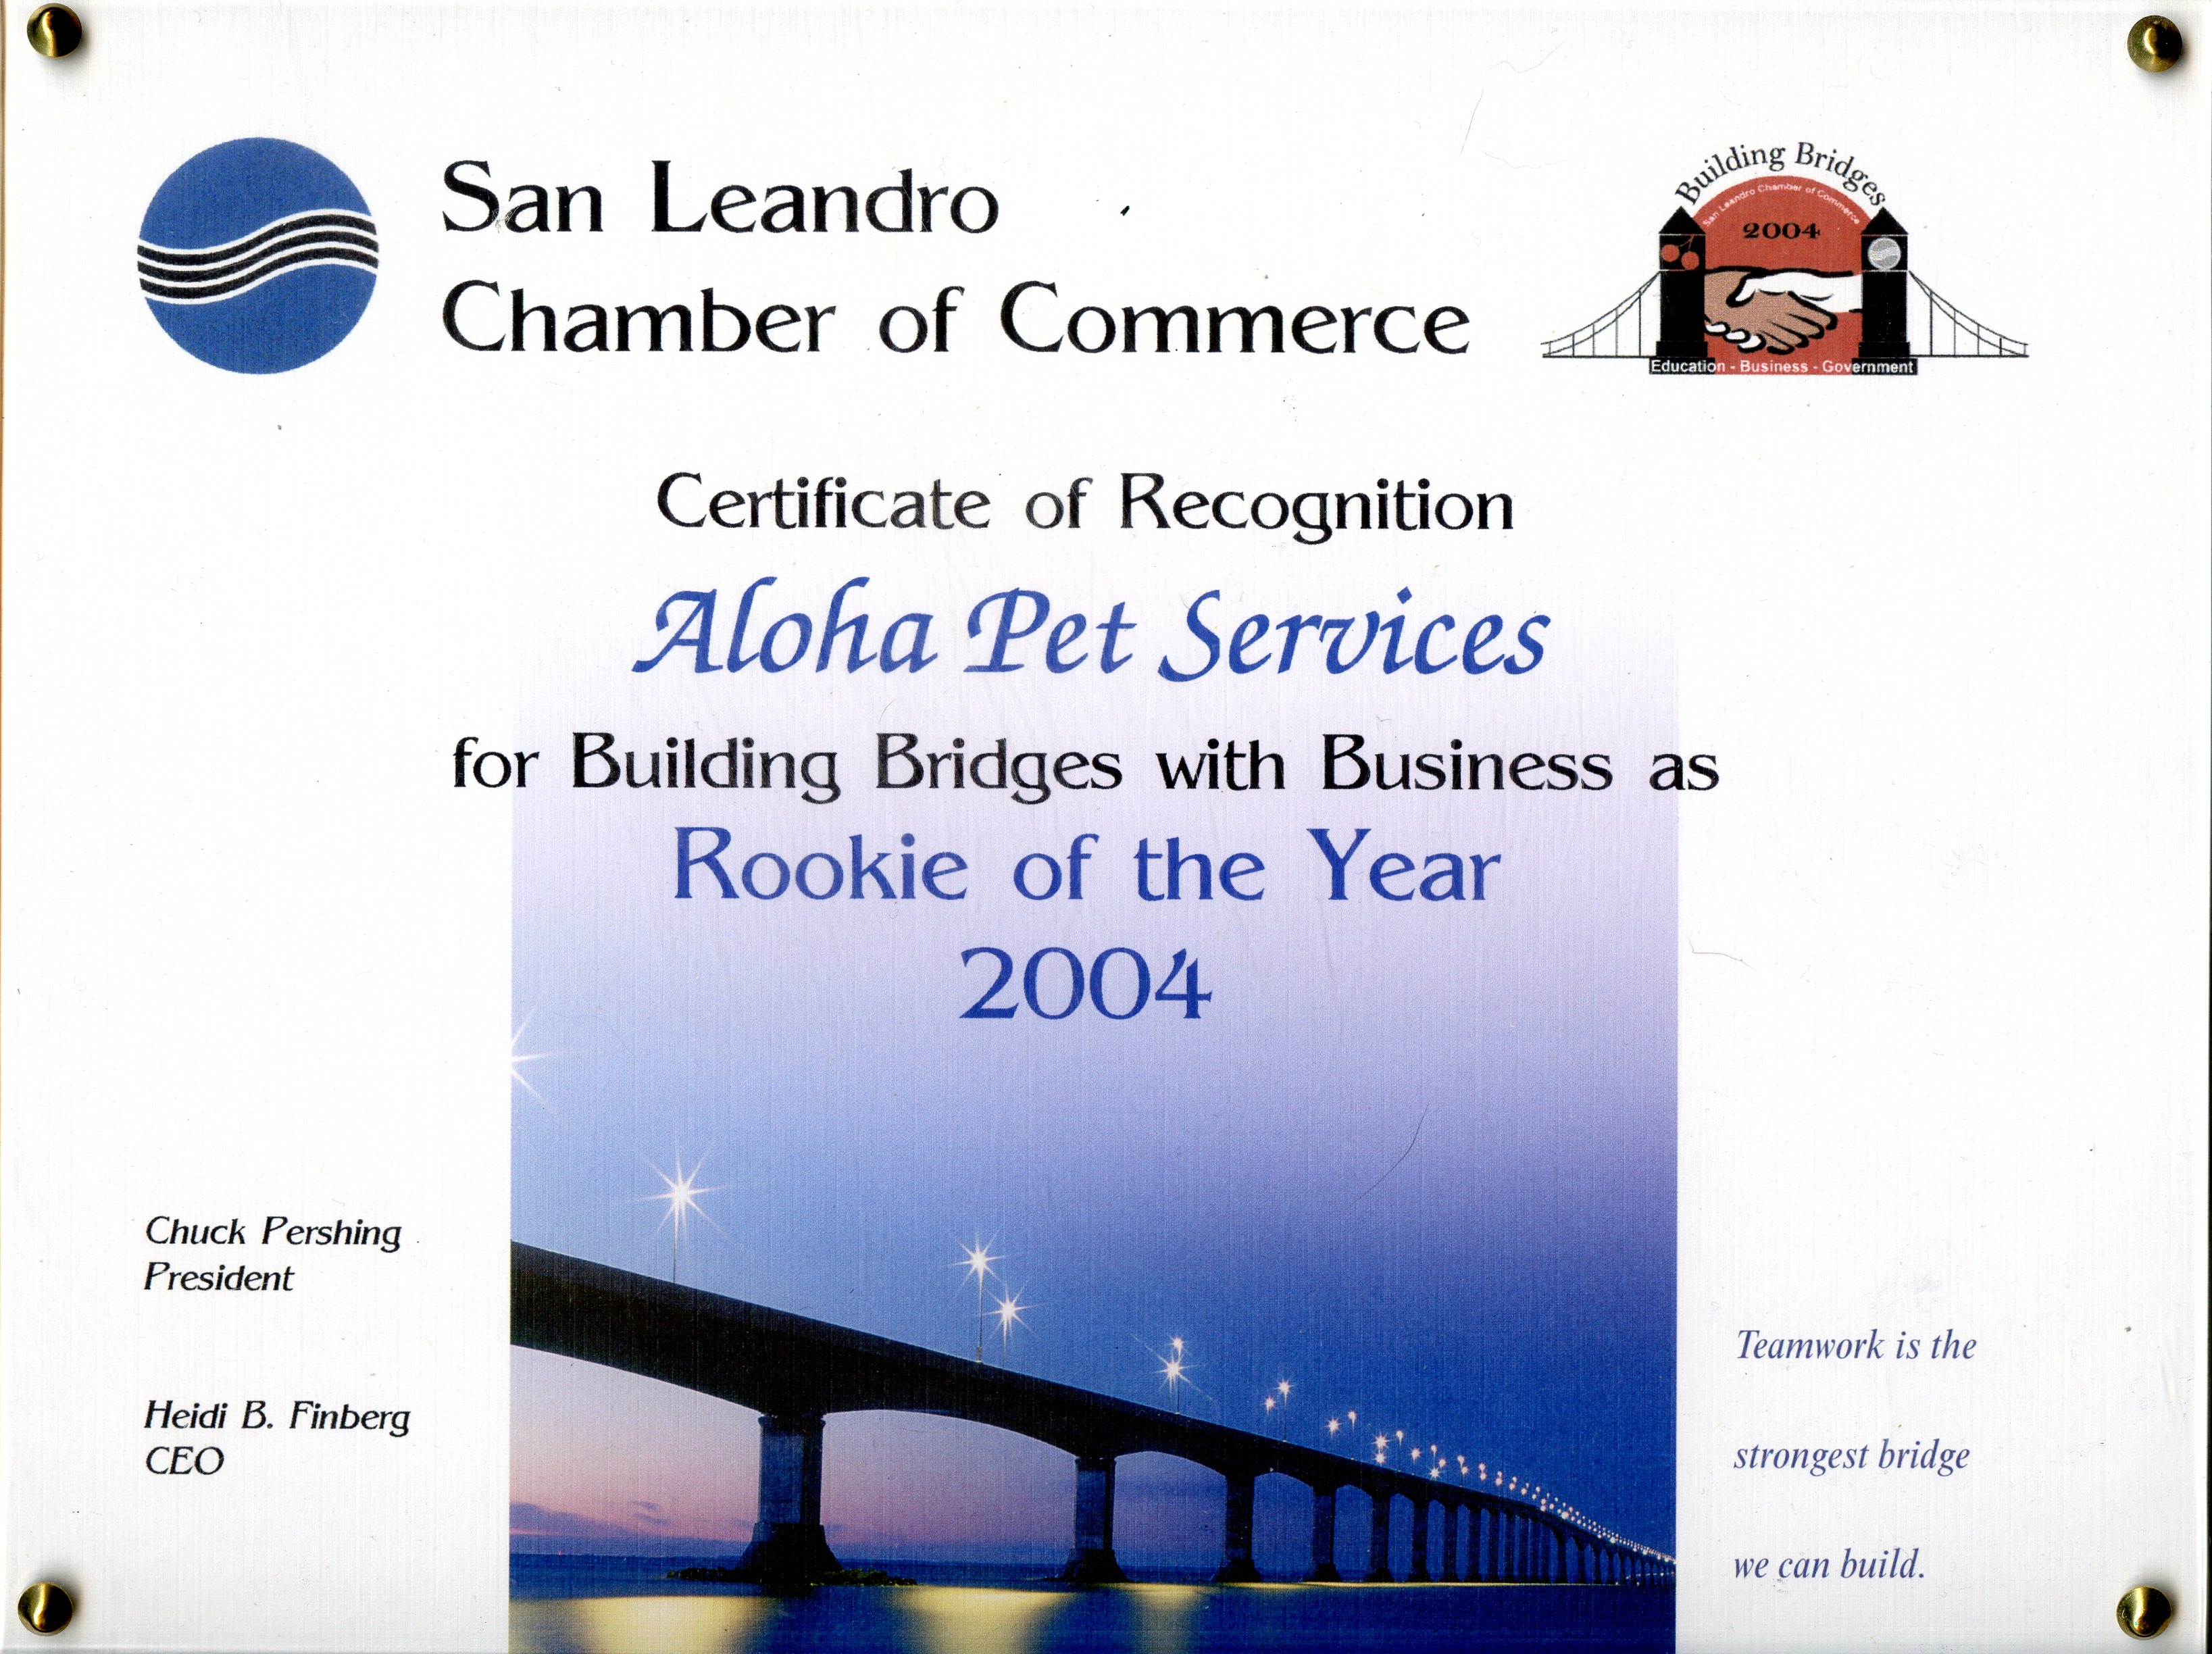 San Leandro Chamber of Commerce Rookie of the Year 2004